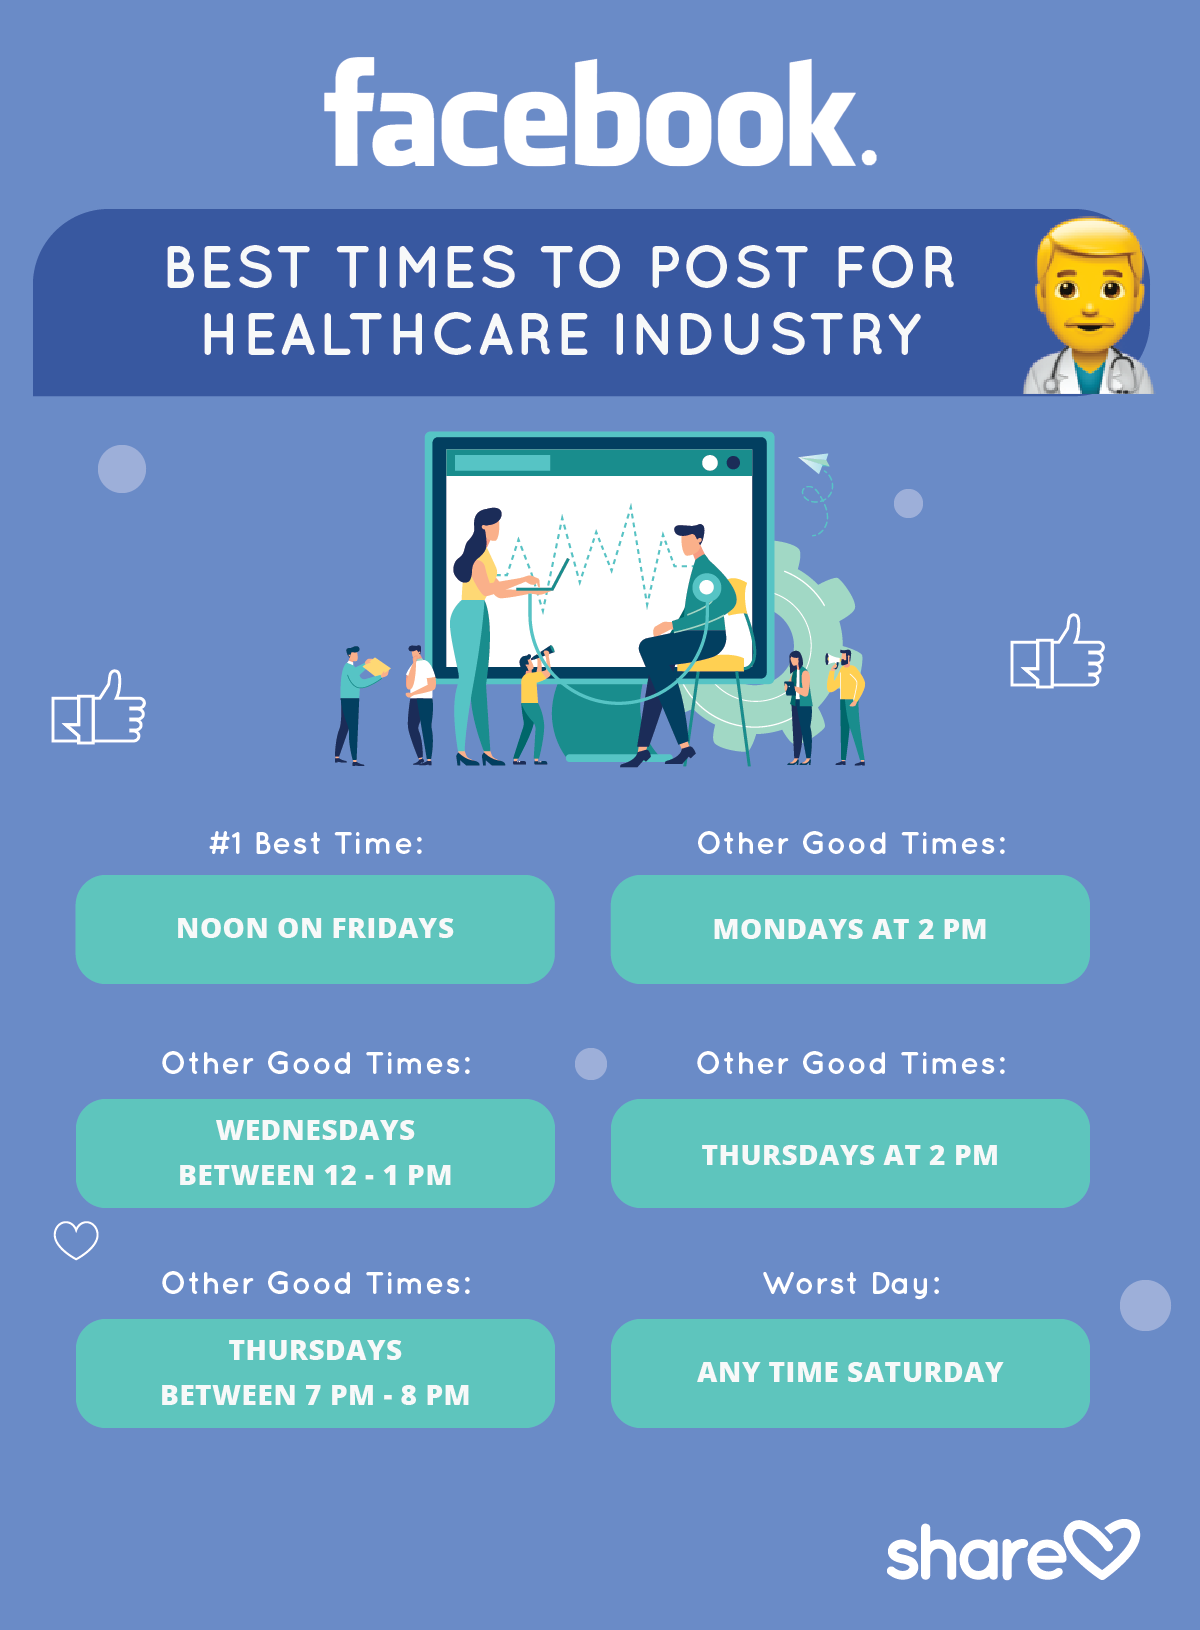 Best Times to Post on Facebook for healthcare